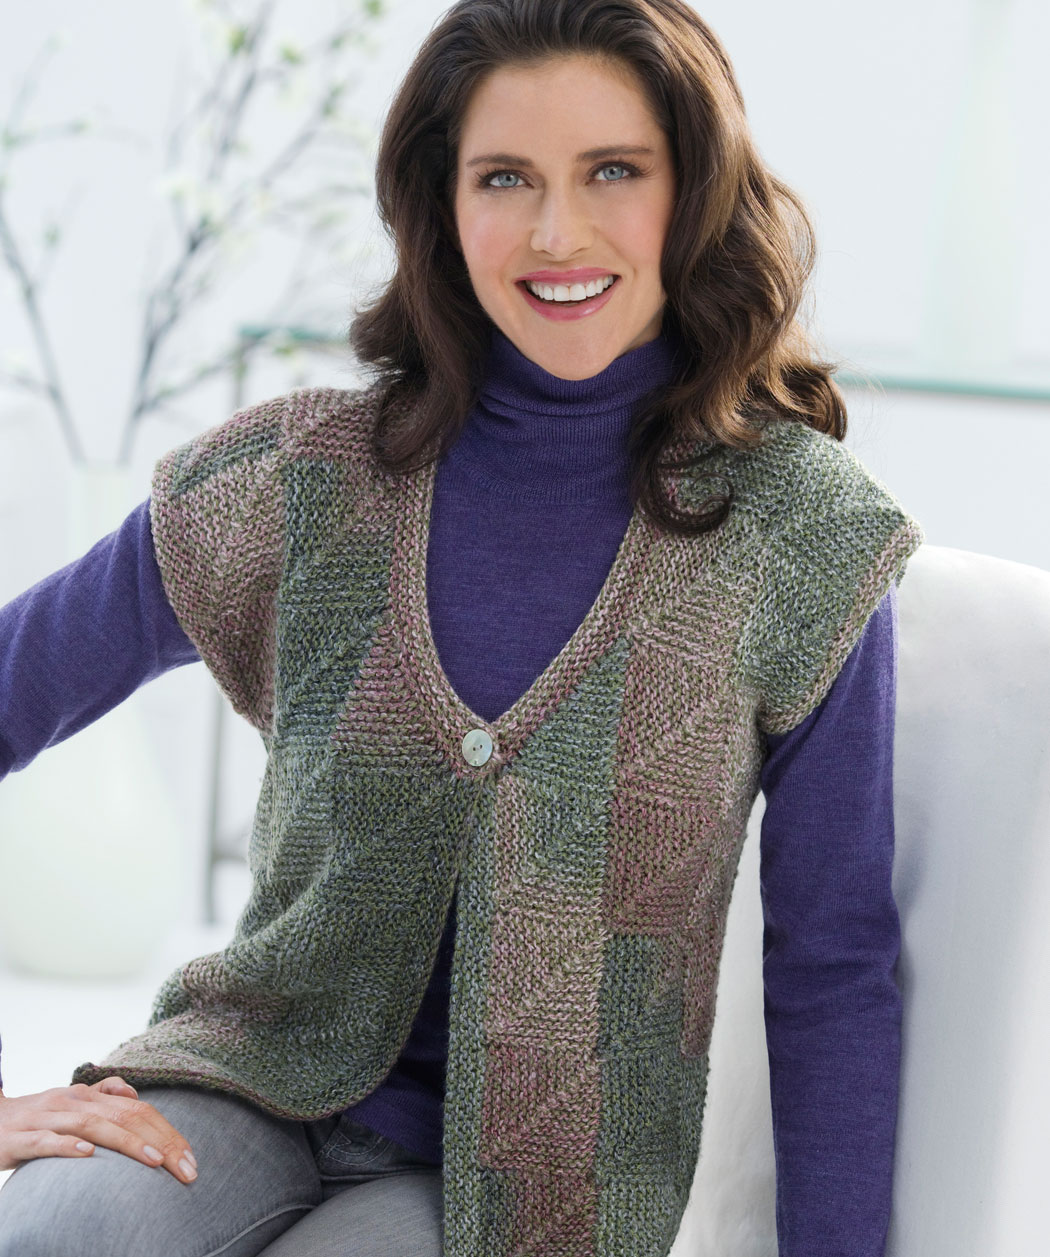 Knitted Vests Free Patterns : Knitted Vest Patterns A Knitting Blog